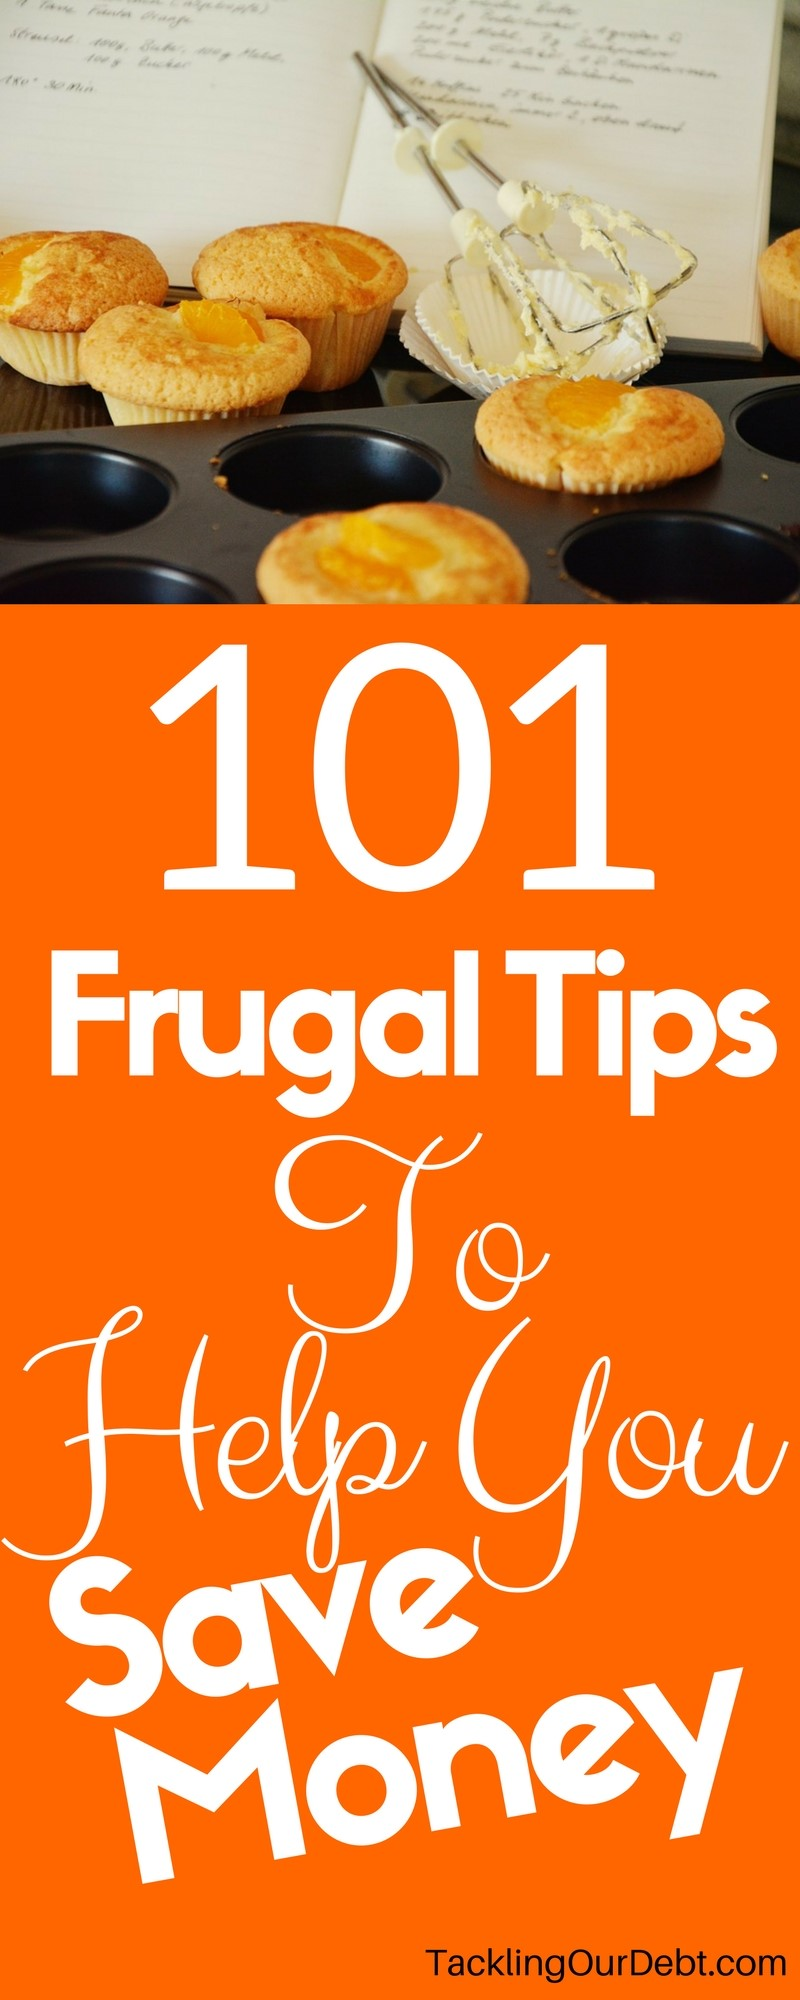 Looking for ways to save money and ensure you stay out of debt, these 101 frugal tips are for you.